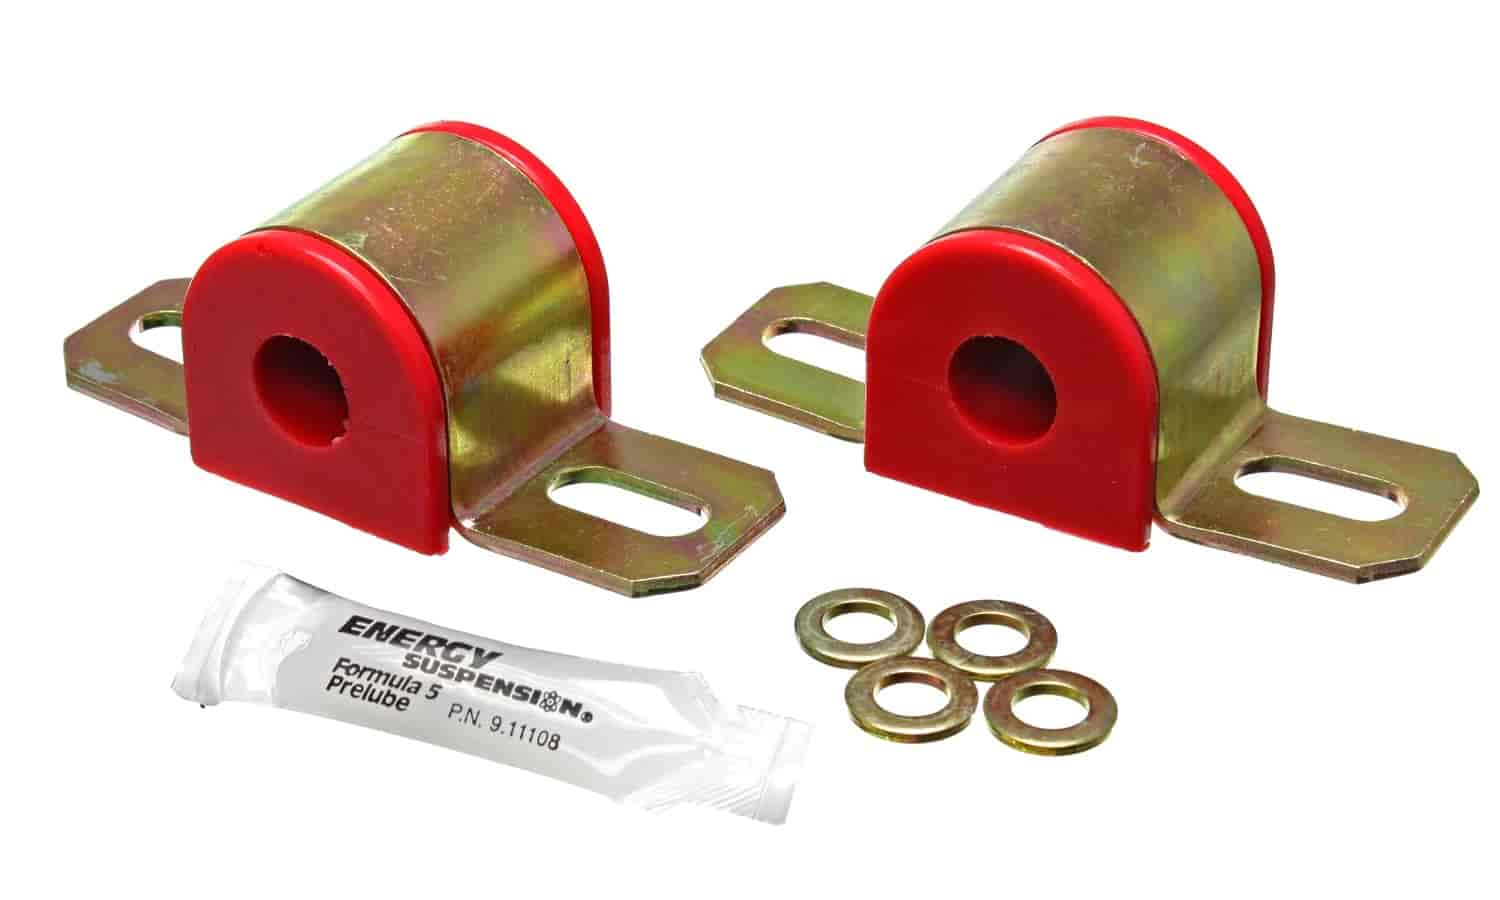 Energy Suspension 9-5107R